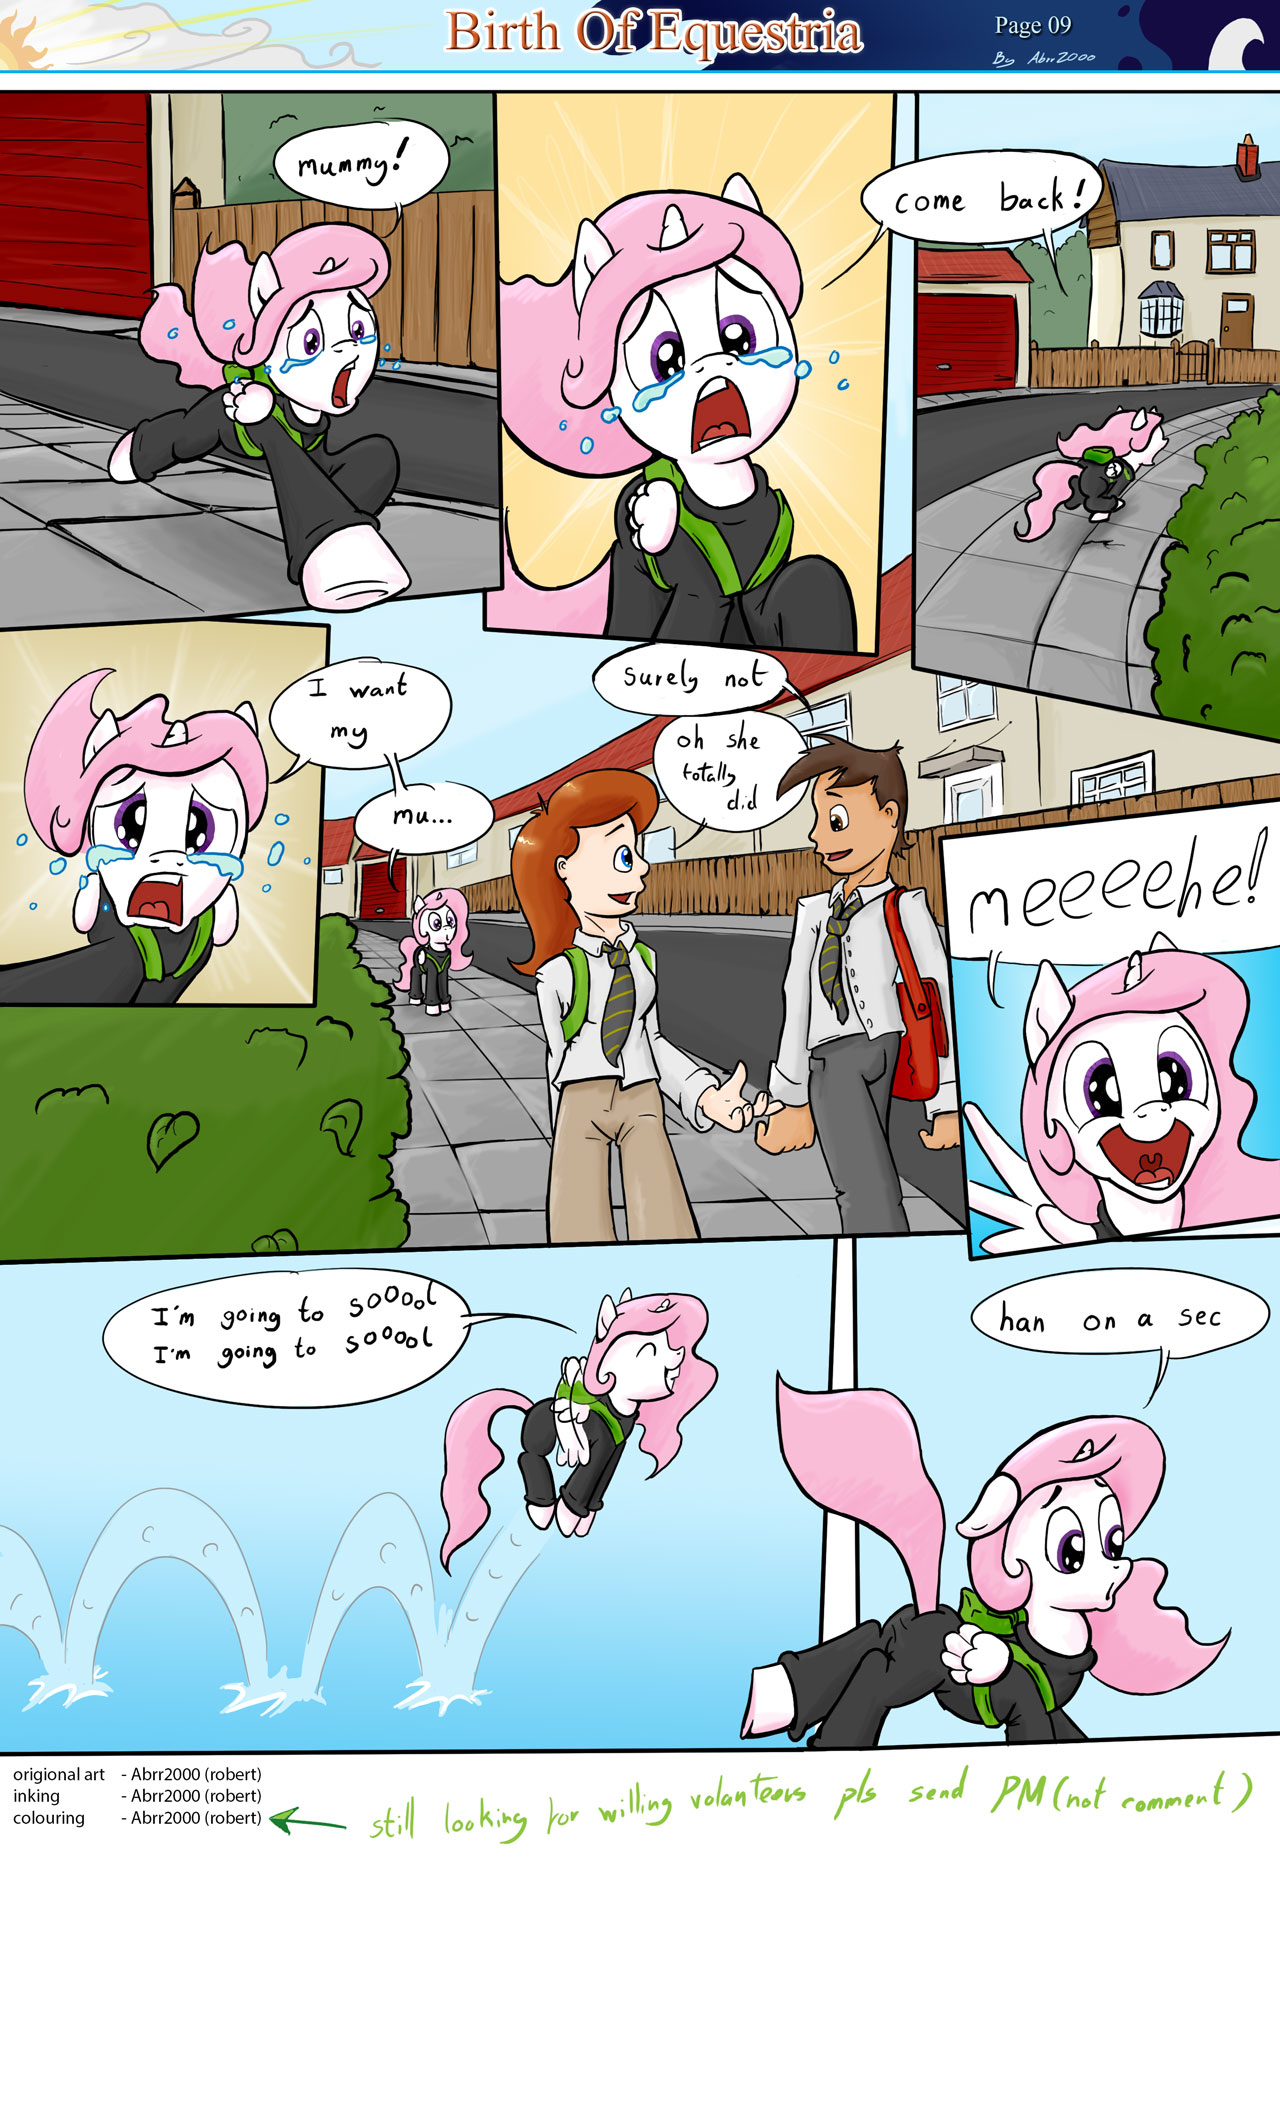 BOE page 09 by Abrr2000